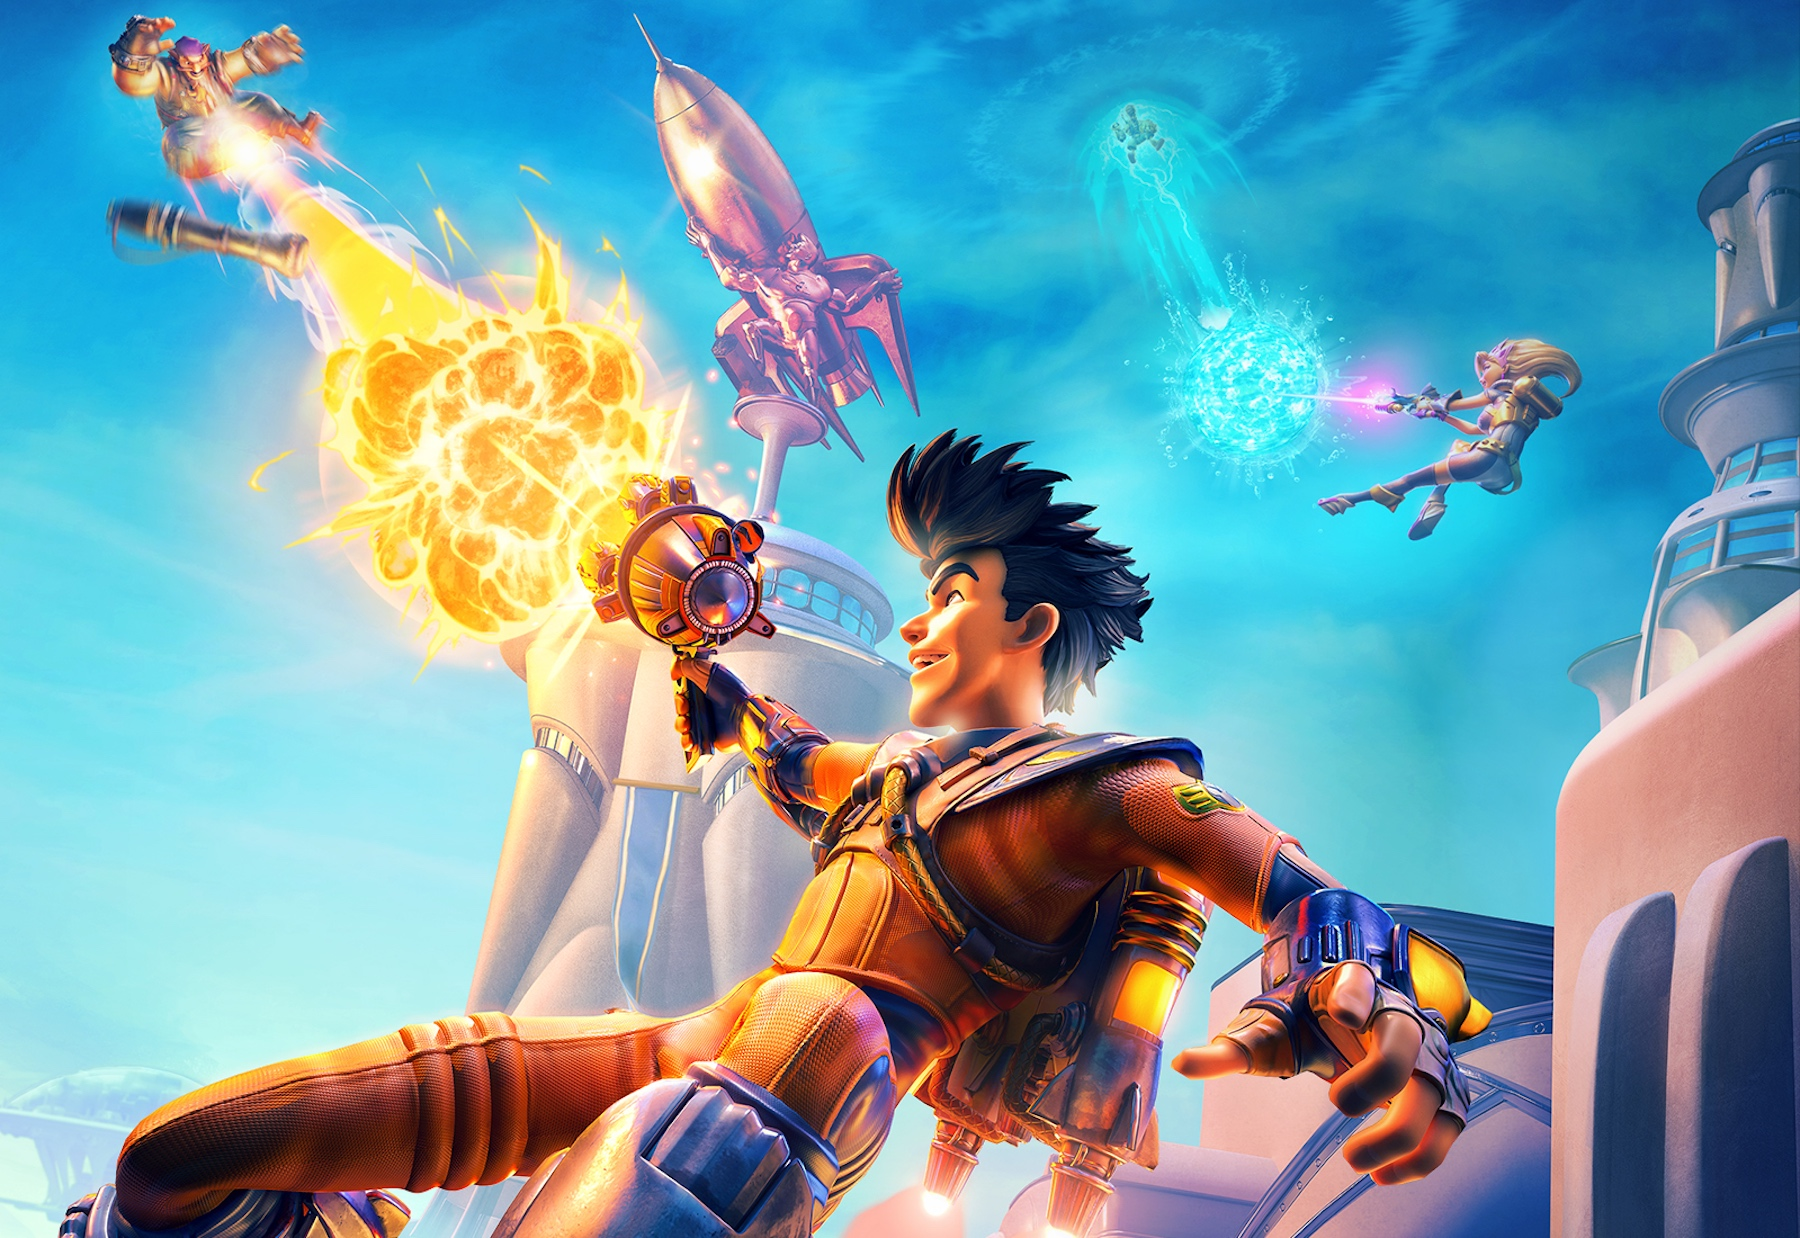 Arena Game Rocket Arena Nexon S New Free To Play Shooter From Ex Halo